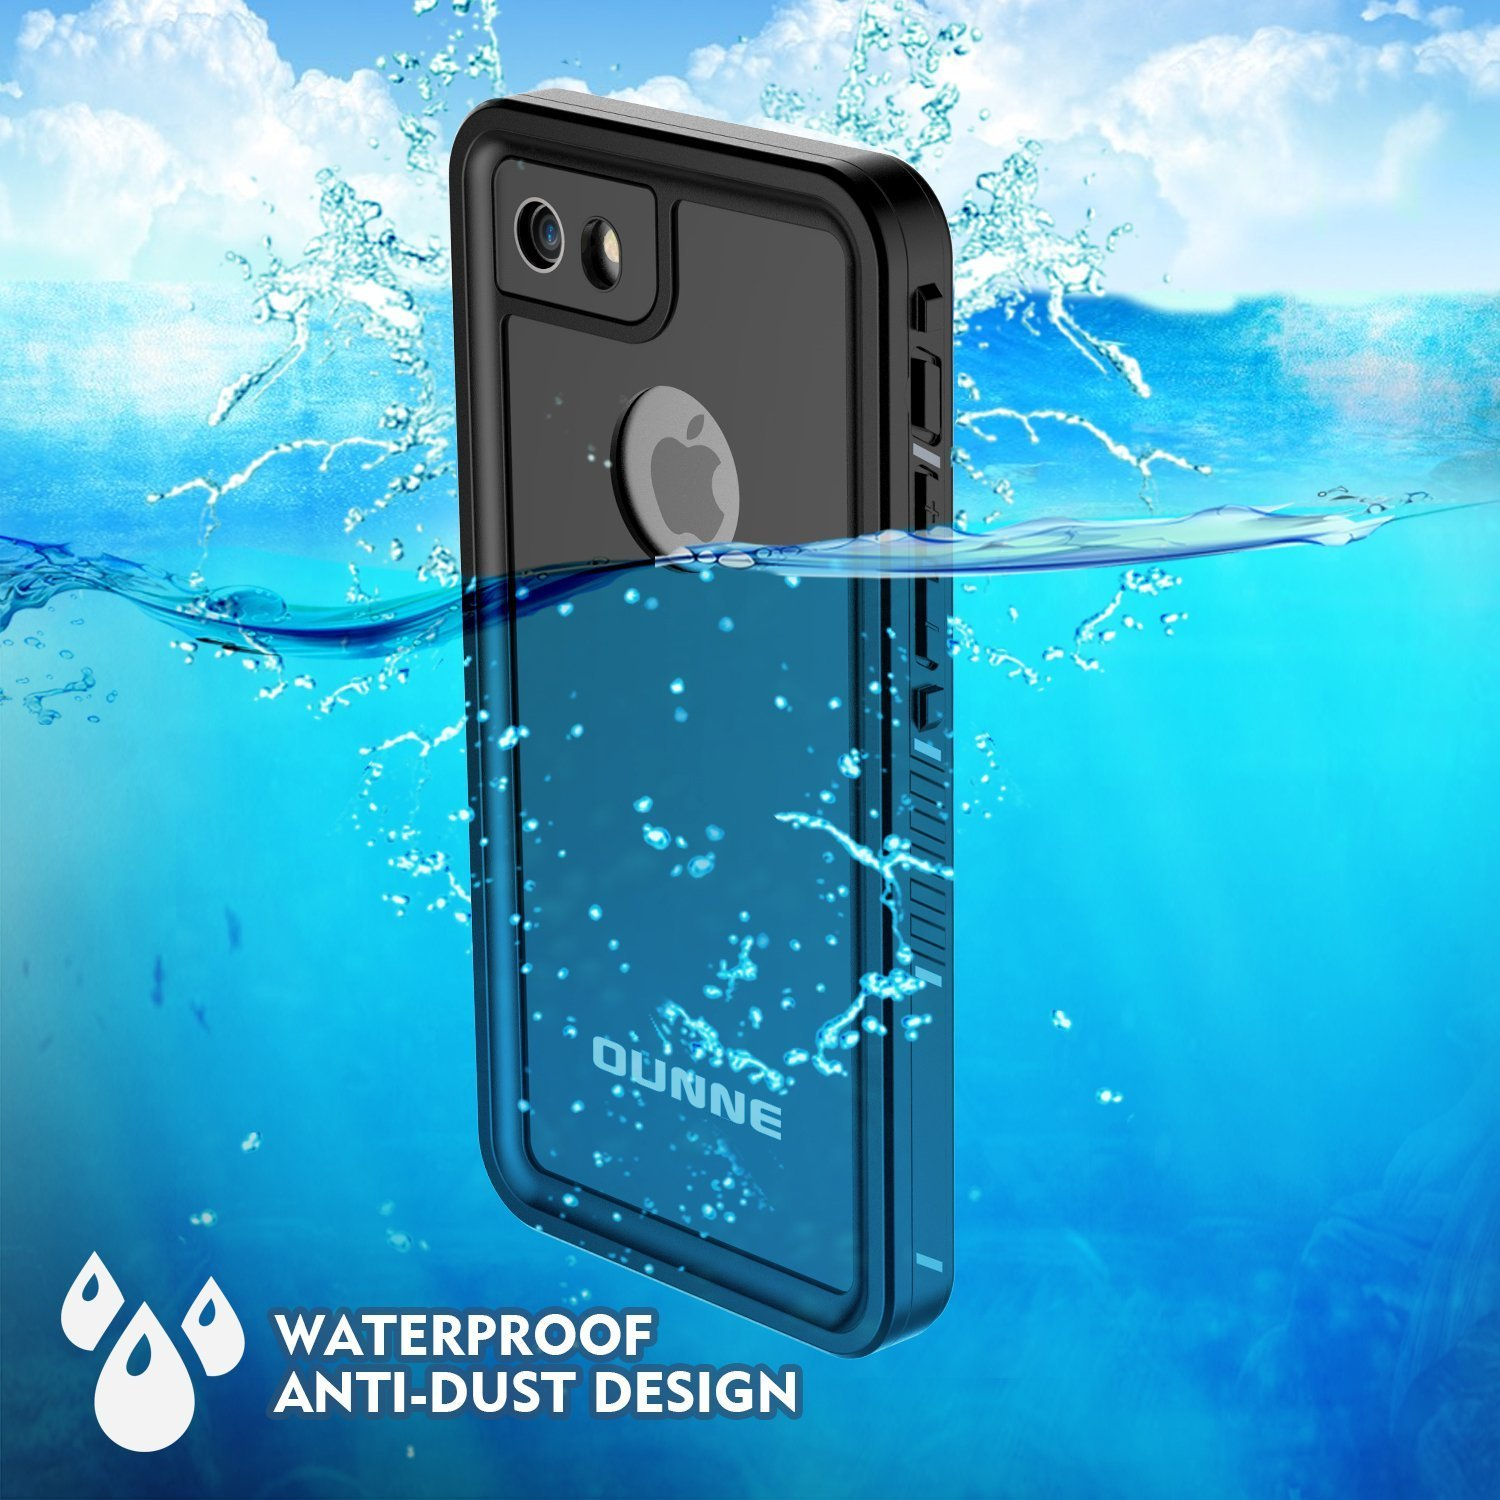 Amazon.com: OUNNE Funda impermeable para iPhone 6, 6s y Plus ...